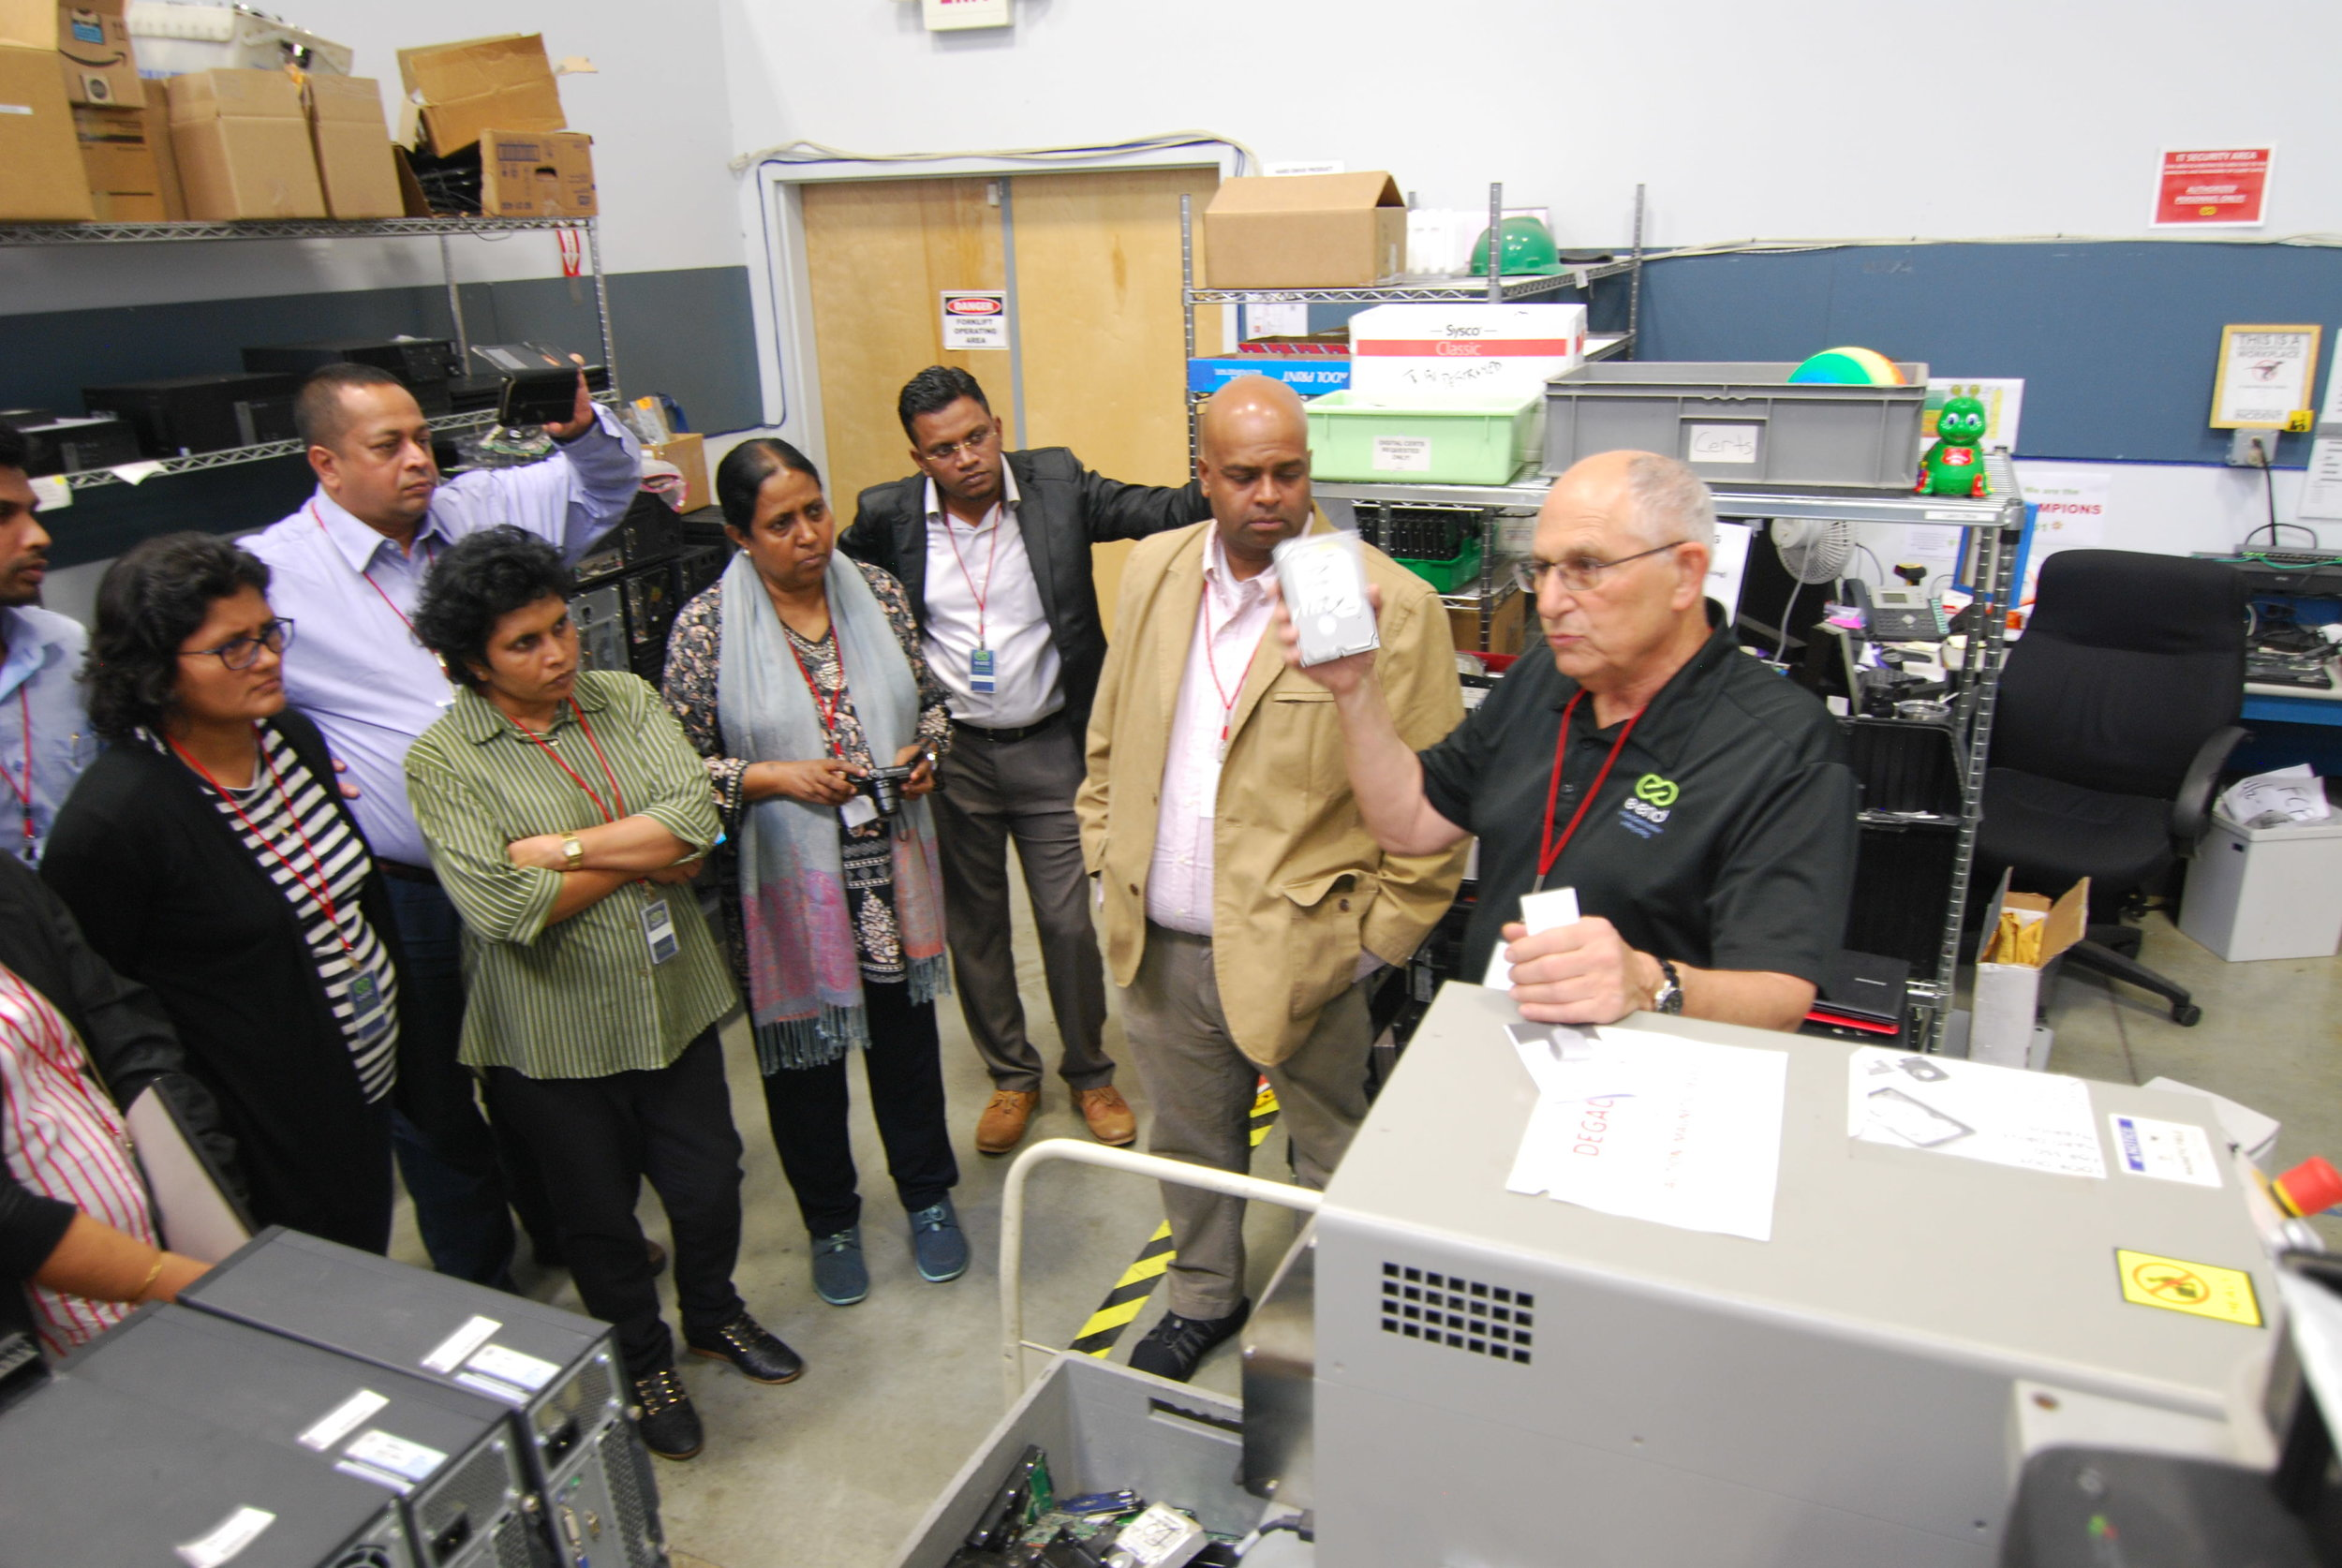 Steve Chafitz, President at e-End, demonstrating  hard drive degaussing  and quality assurance procedures.